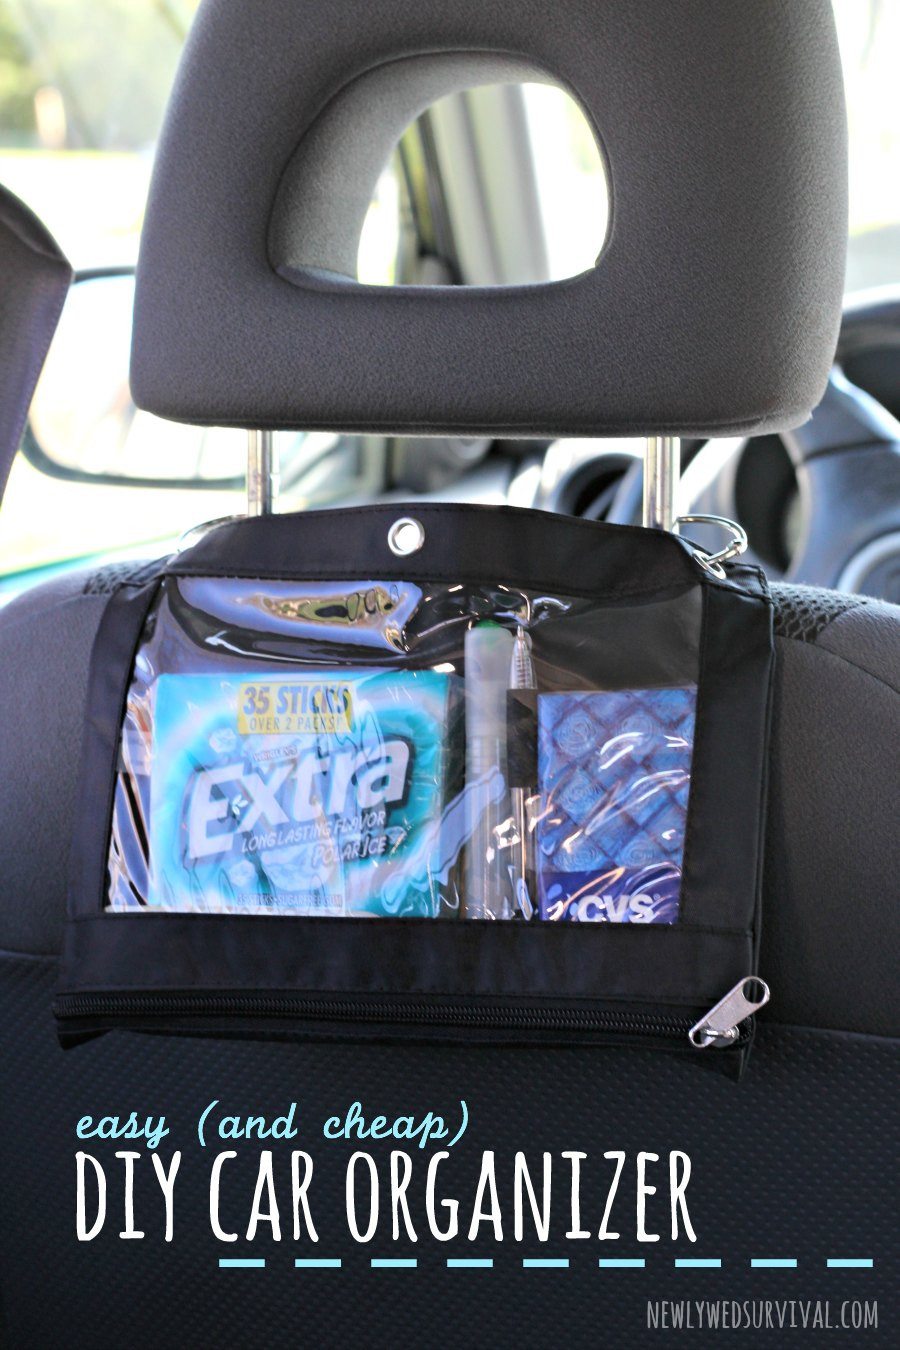 DIY Car Organizer  Easy and Cheap DIY Car Organizer Newlywed Survival